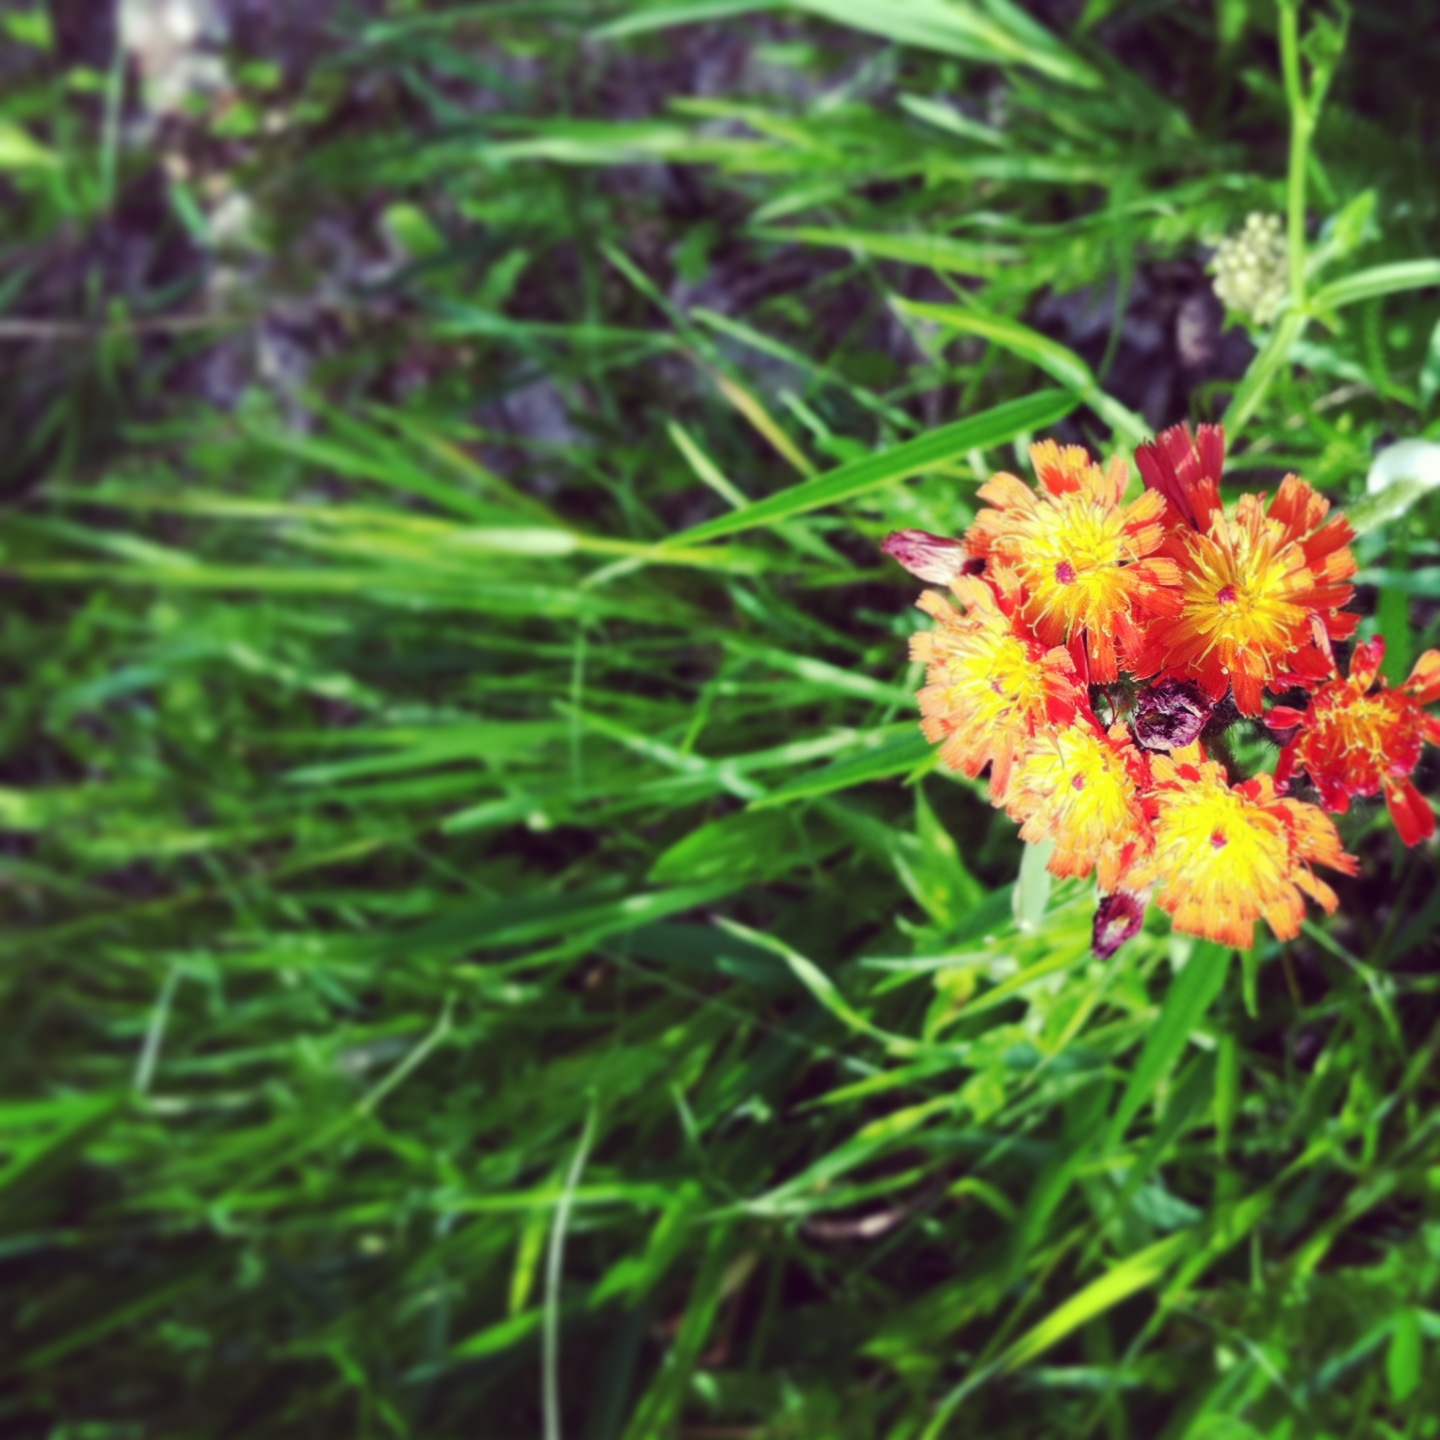 The wildflowers in Ontonagon were gorgeous. I think these are called Indian Paintbrushes.